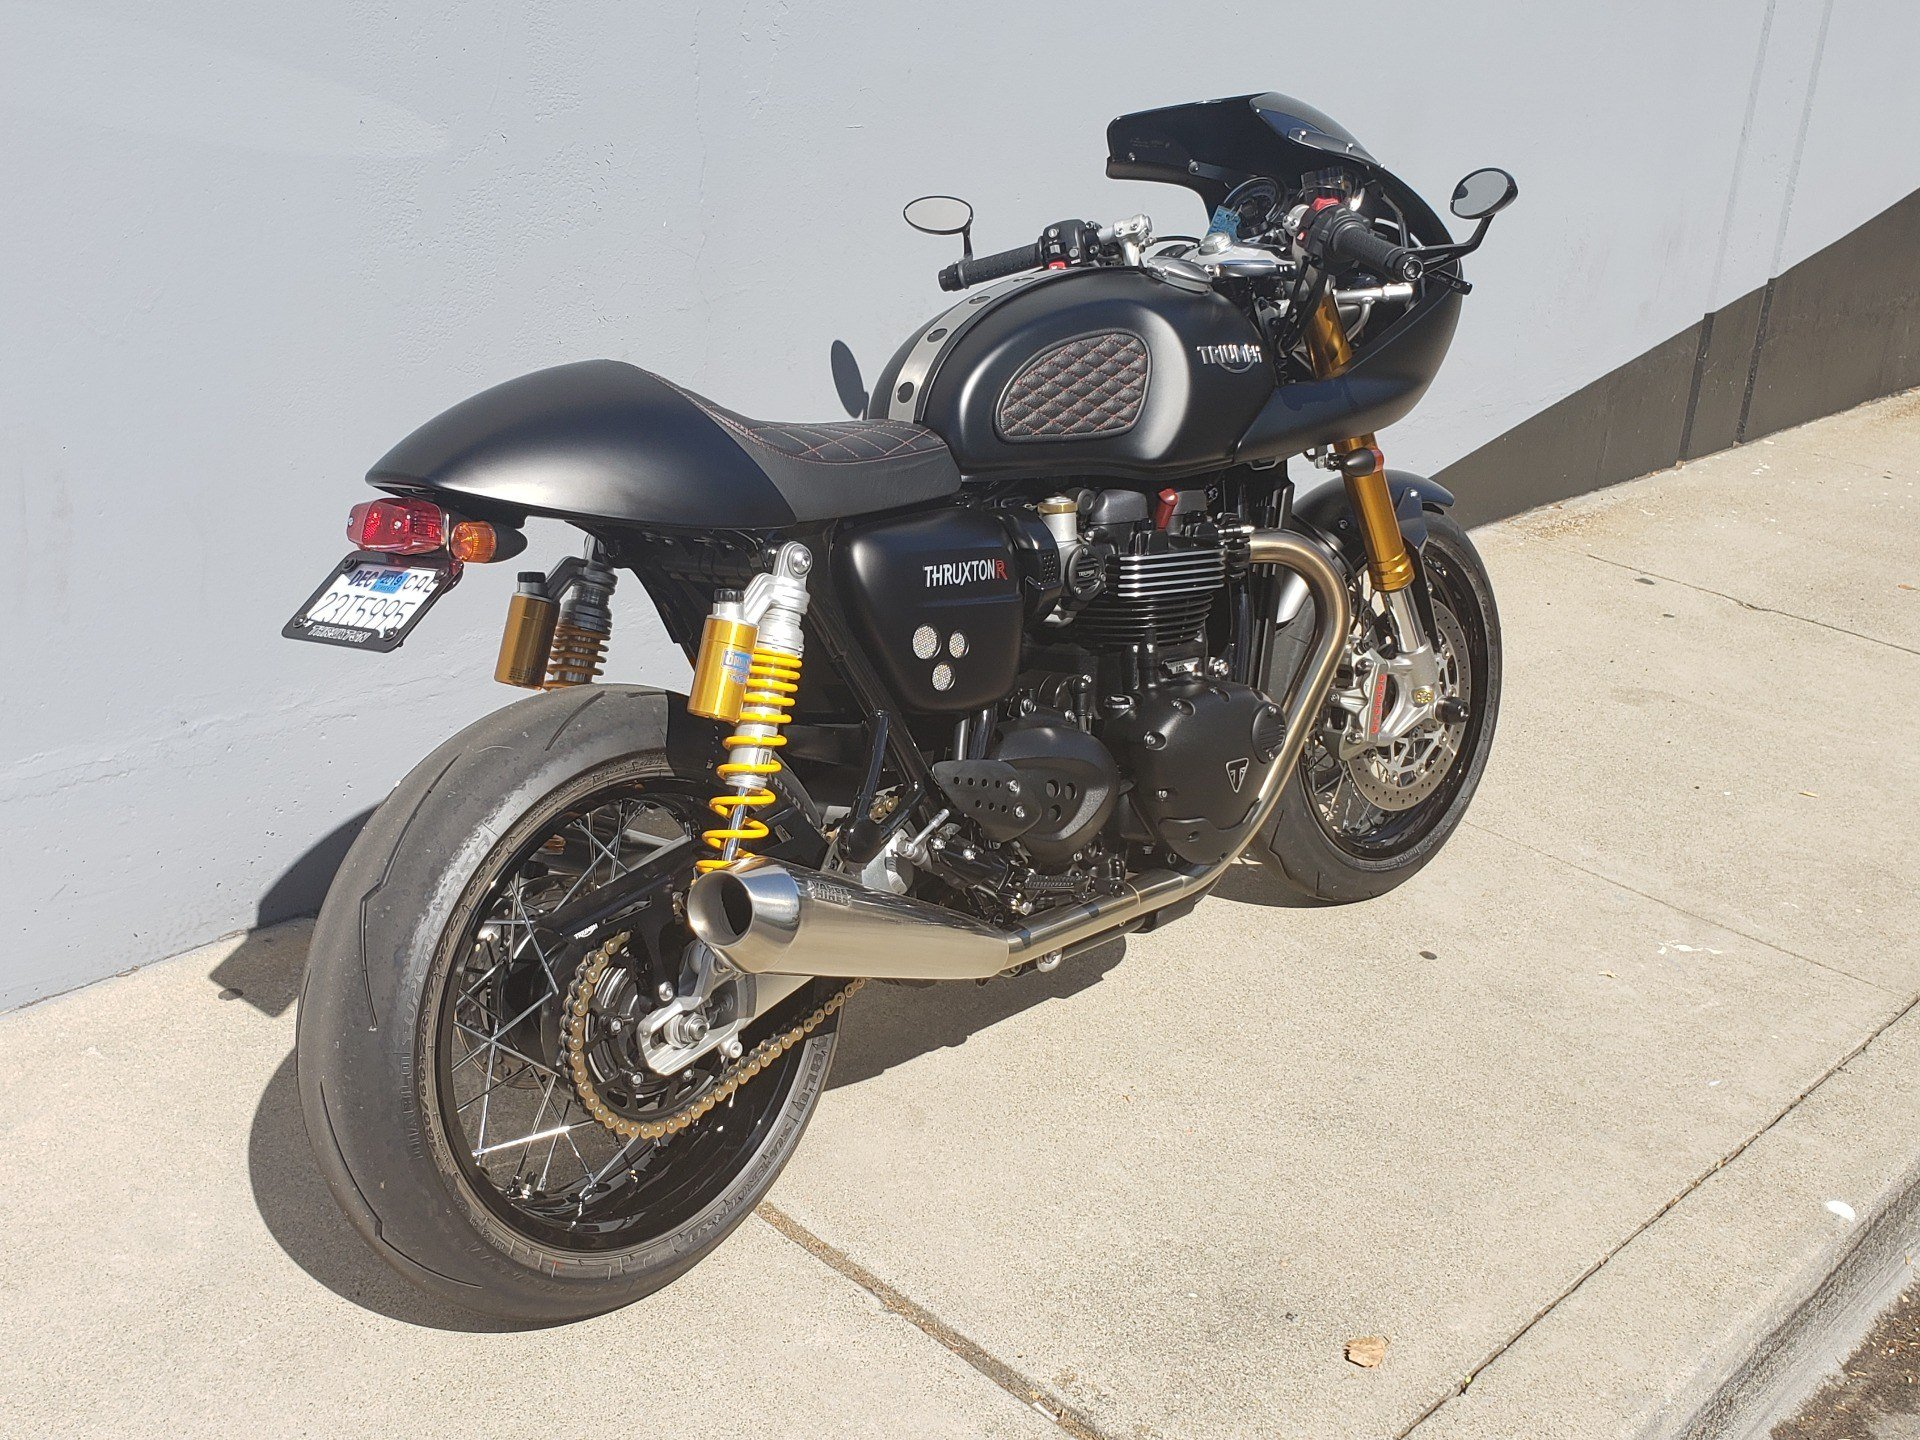 2017 Triumph Thruxton 1200 R in San Jose, California - Photo 11